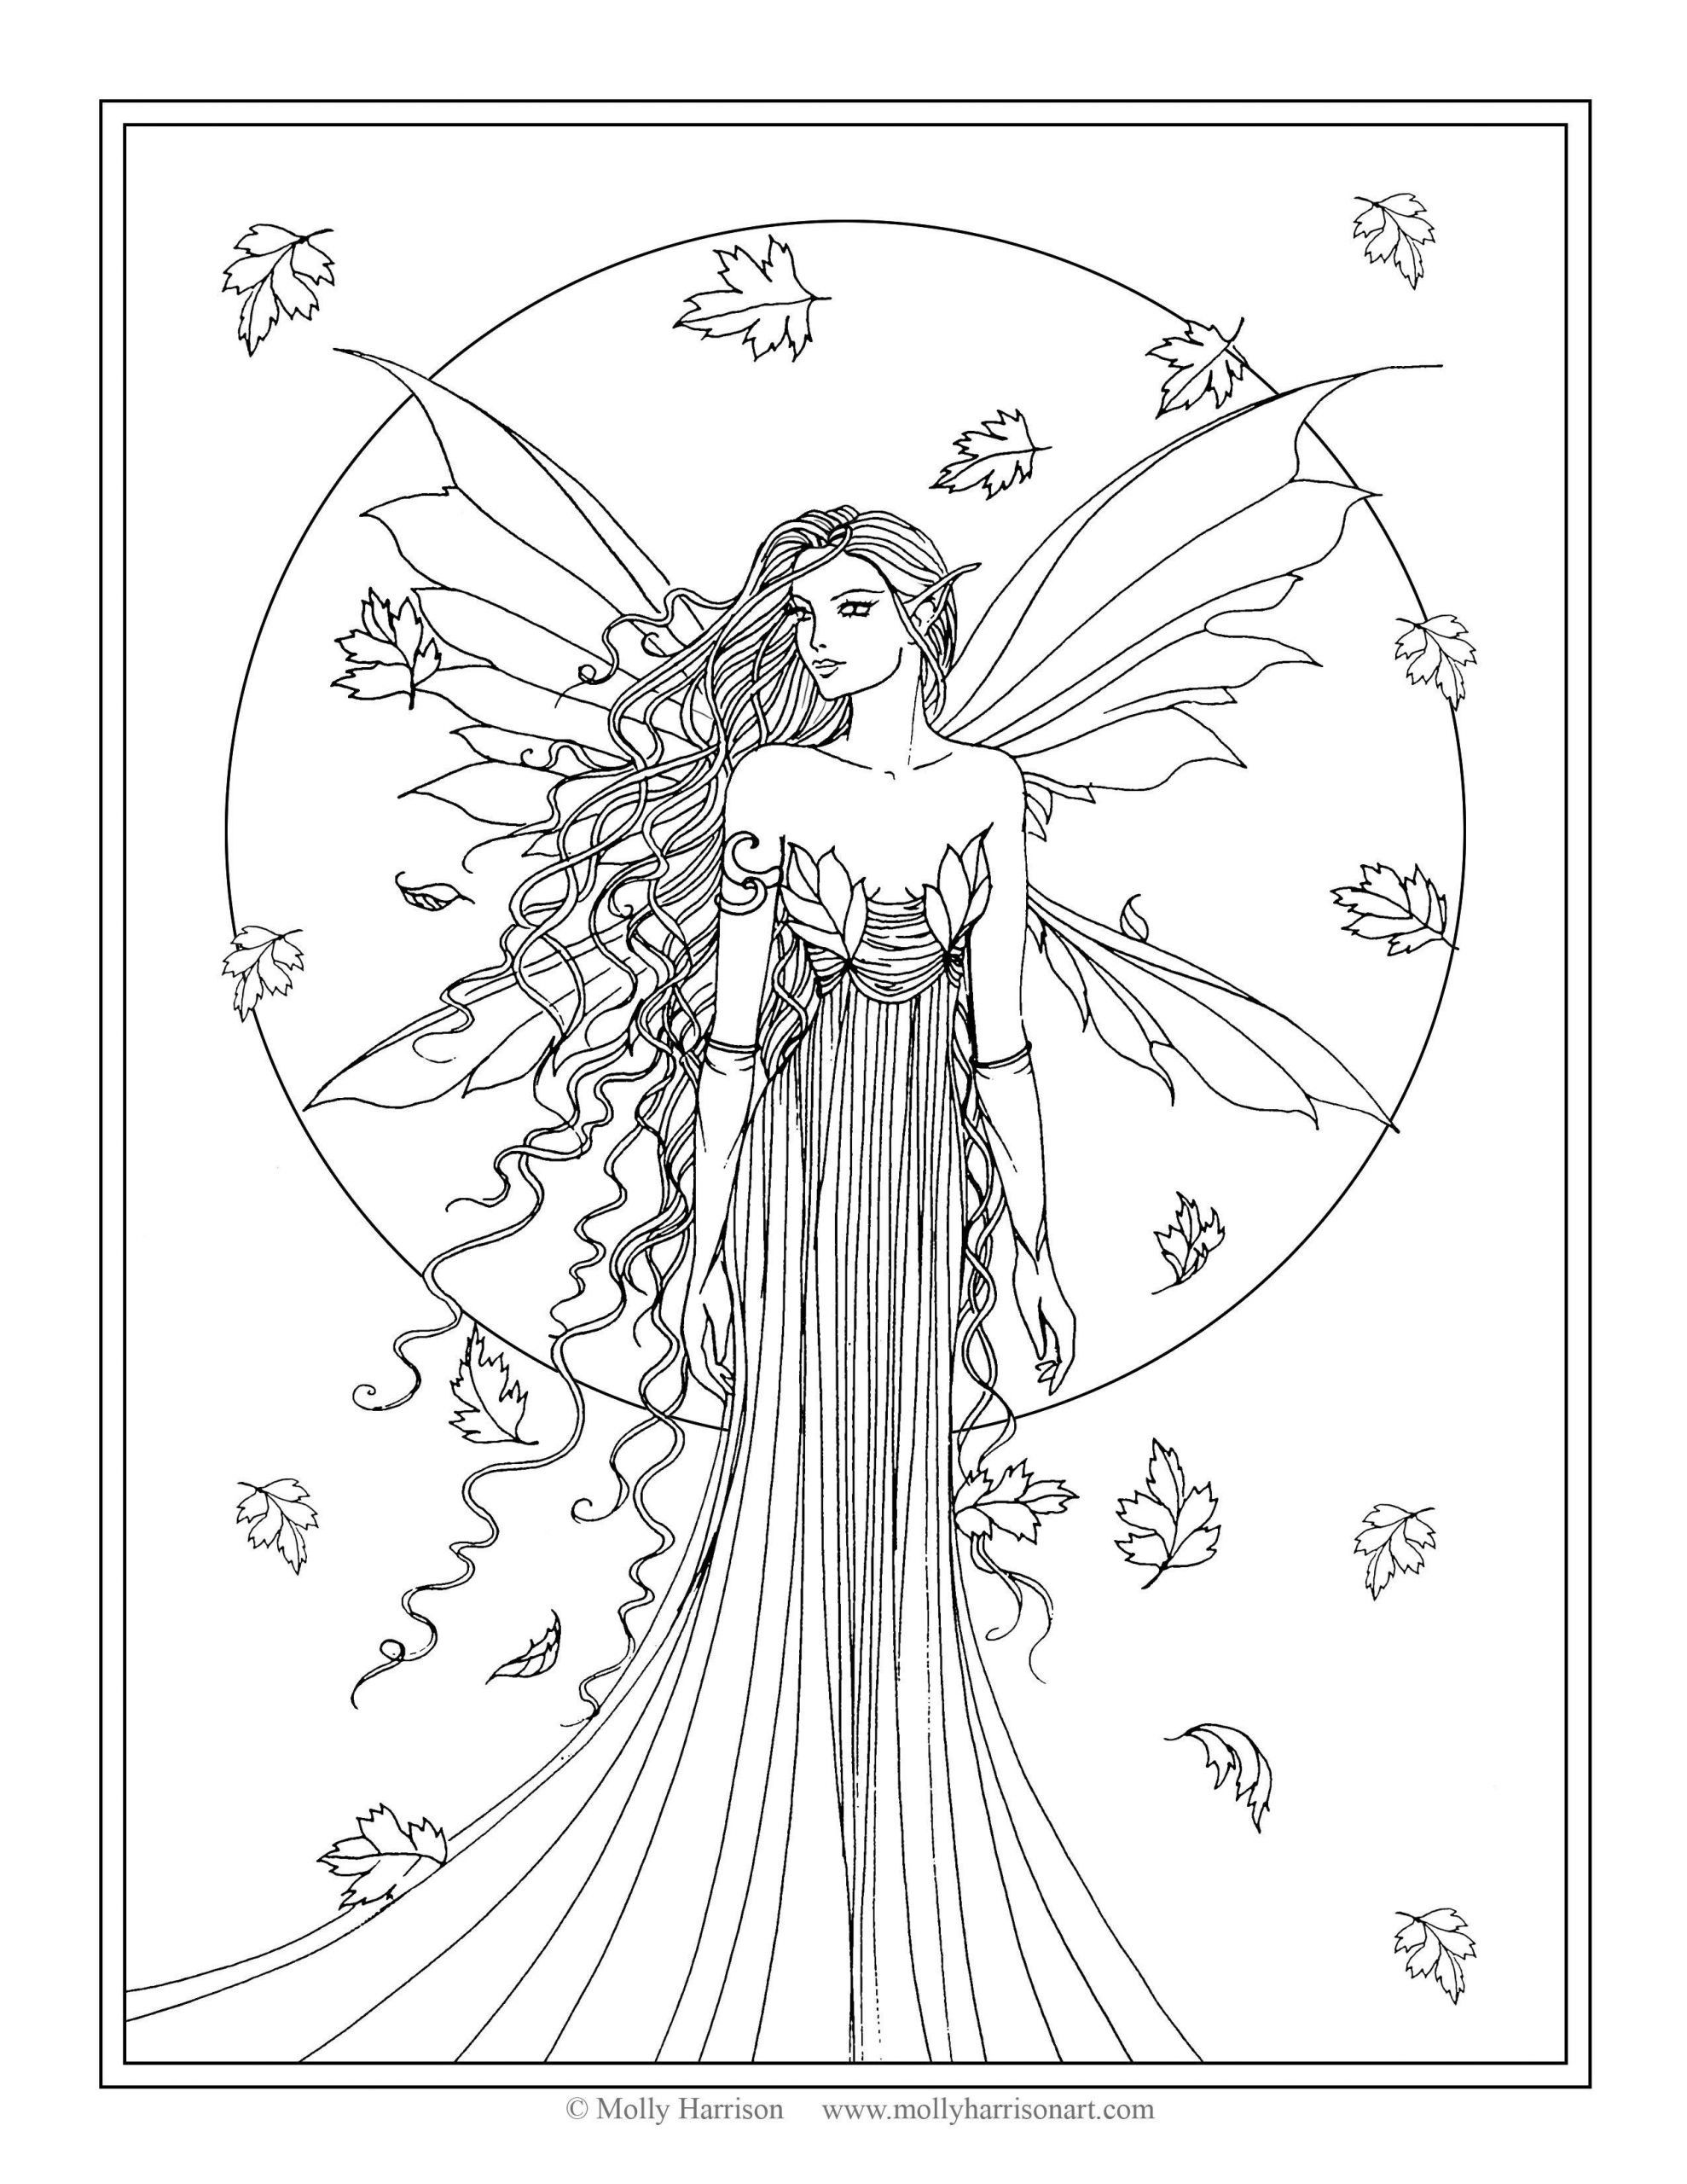 Flower Fairy Coloring Page Youngandtae Com Fairy Coloring Book Fairy Coloring Pages Fairy Coloring